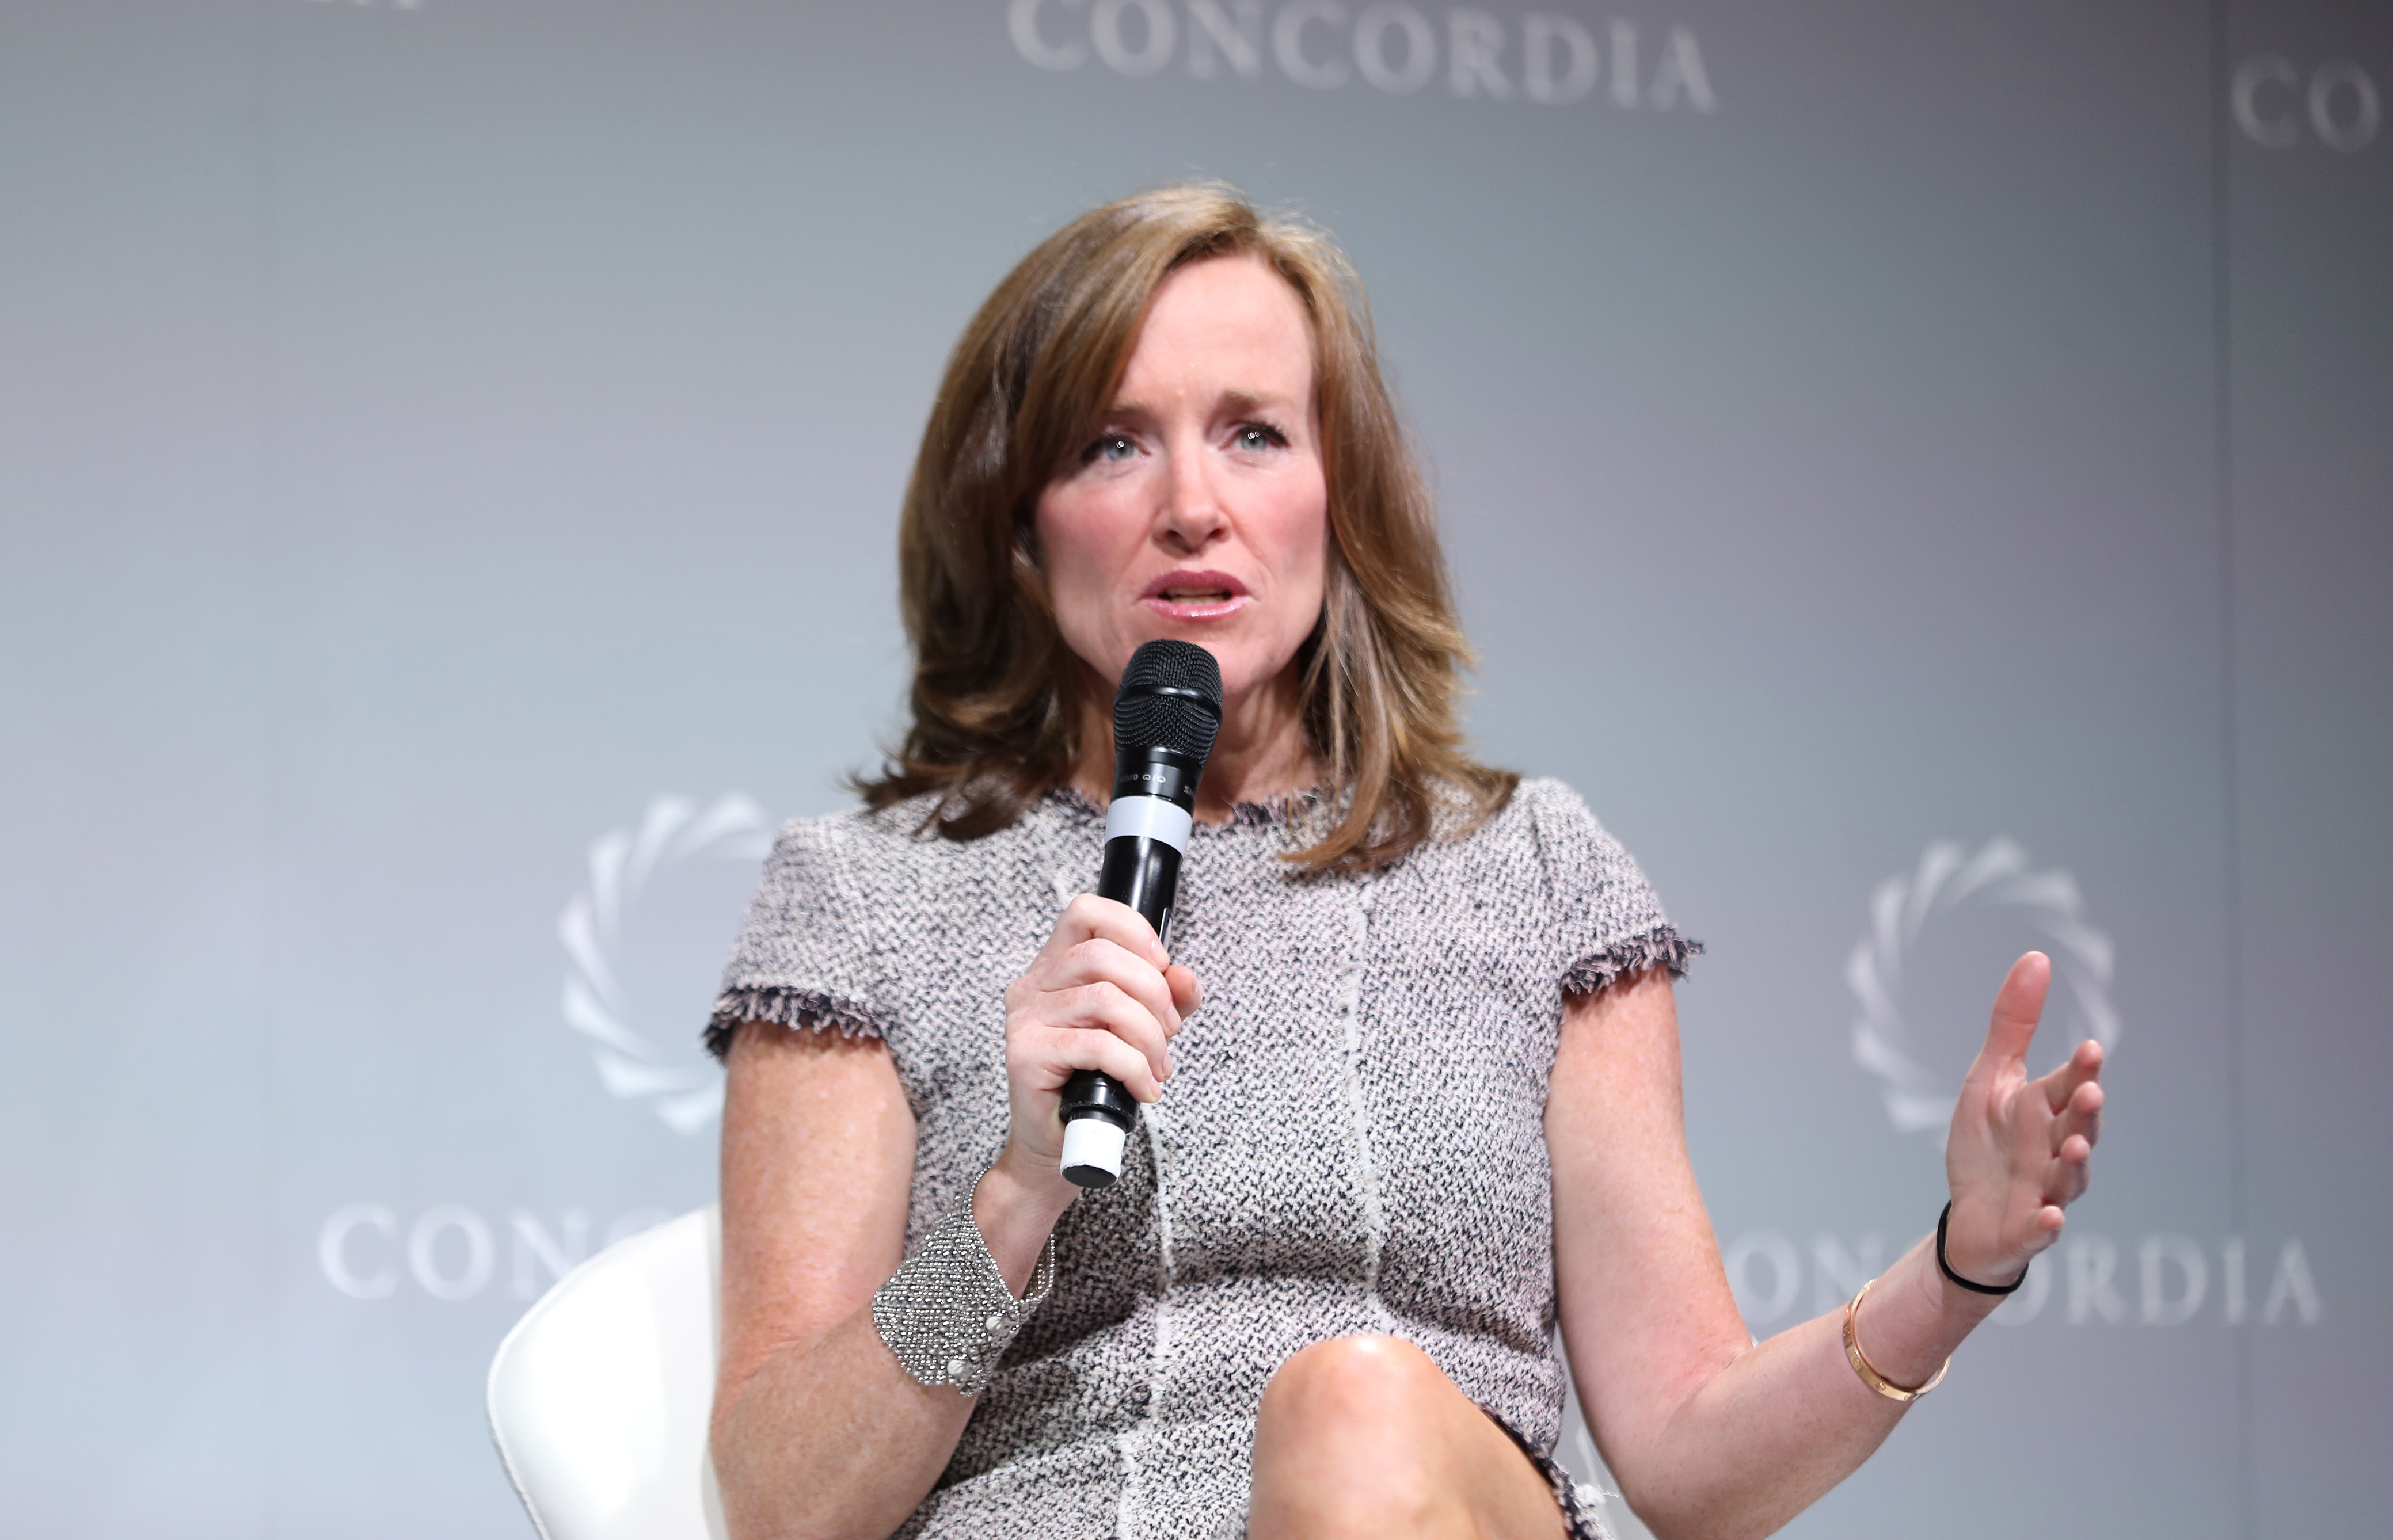 Member of the United States of House of Representatives from New York Kathleen Rice speaks at the 2016 Concordia Summit - Day 1 at Grand Hyatt New York on September 19, 2016 in New York City. Ben Hider/Getty Images for Concordia Summit